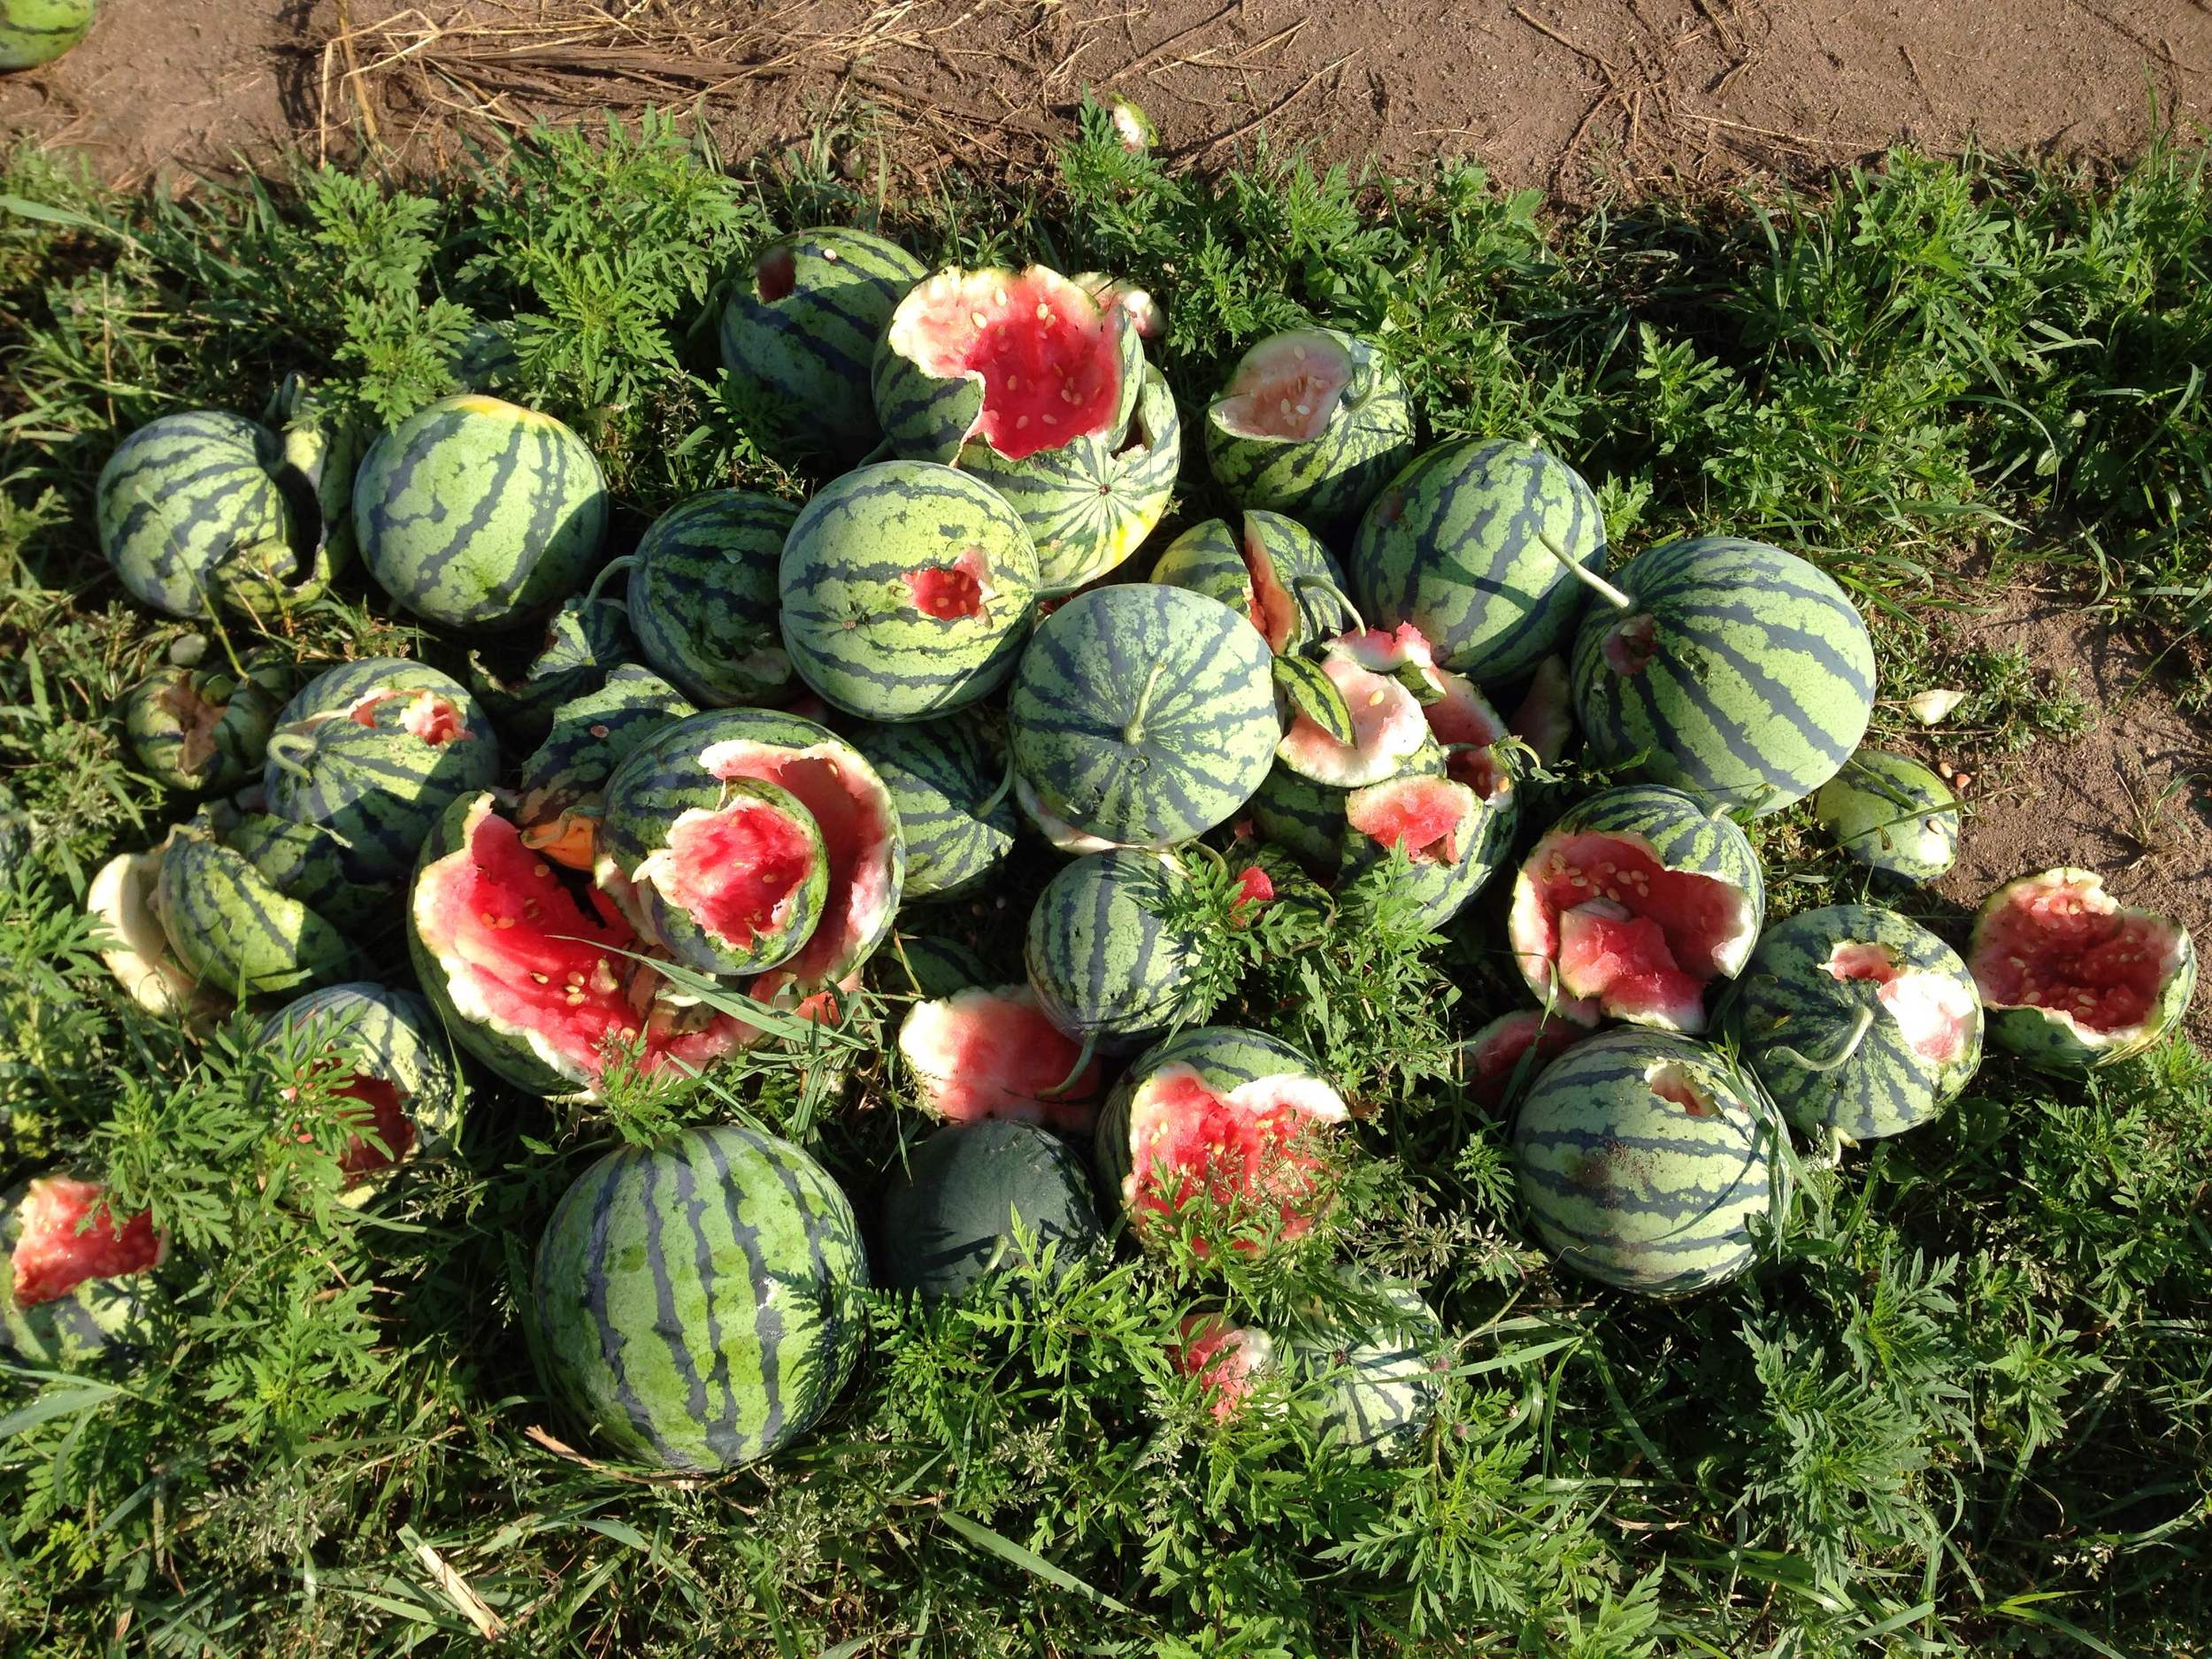 Some of the eaten melons culled from the field.